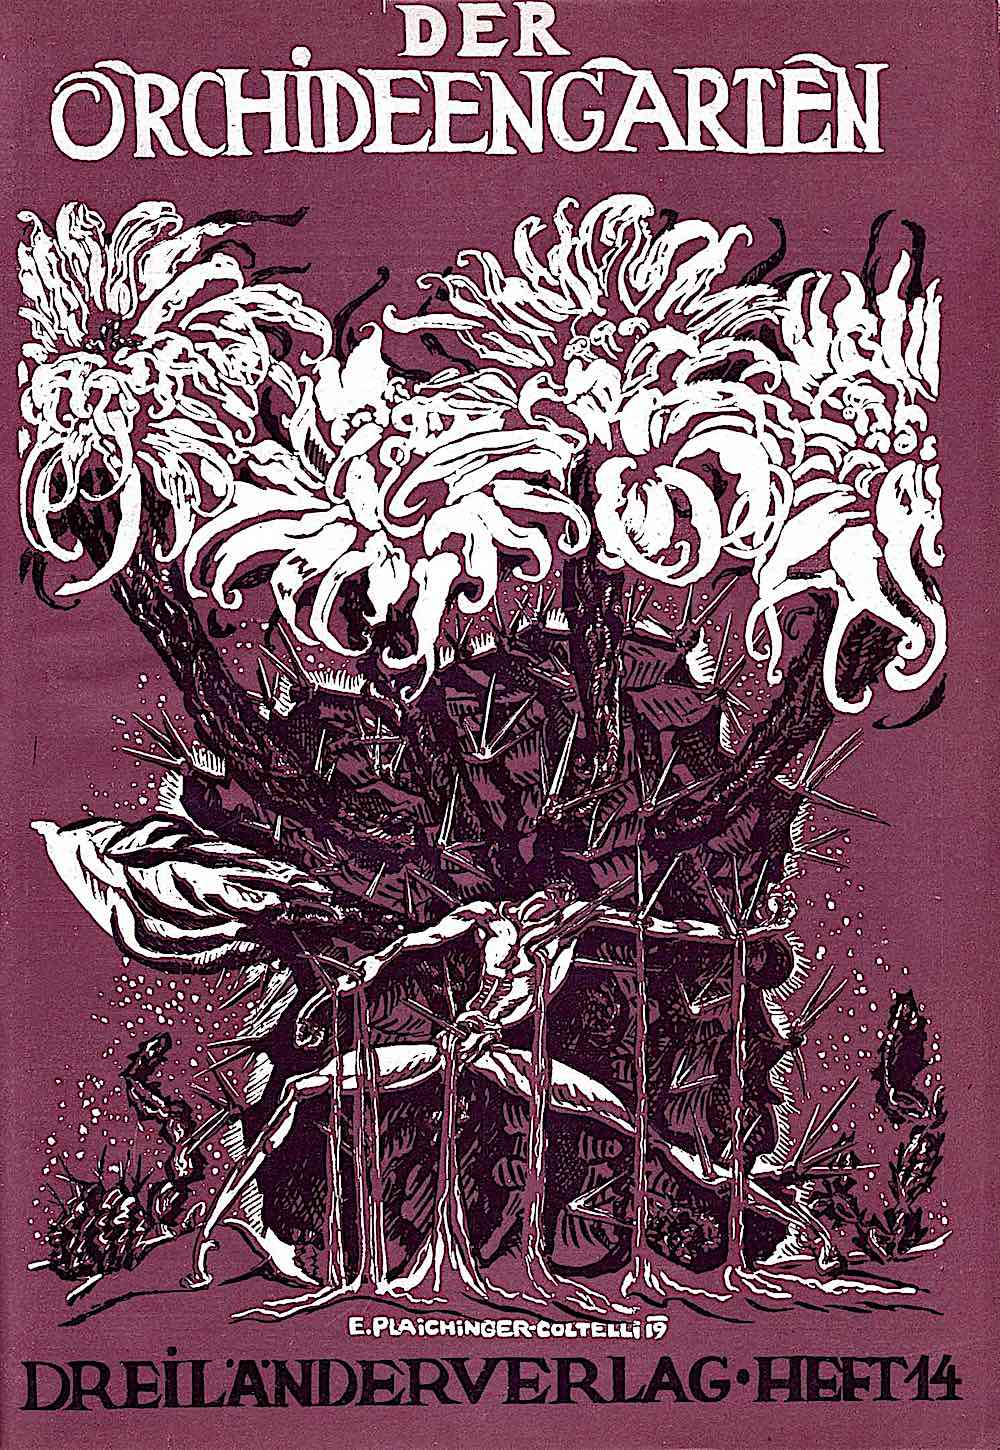 Der Orchid Een Garten,  a 1919 publication cover showing a man impaled on giant garden thorns in purple